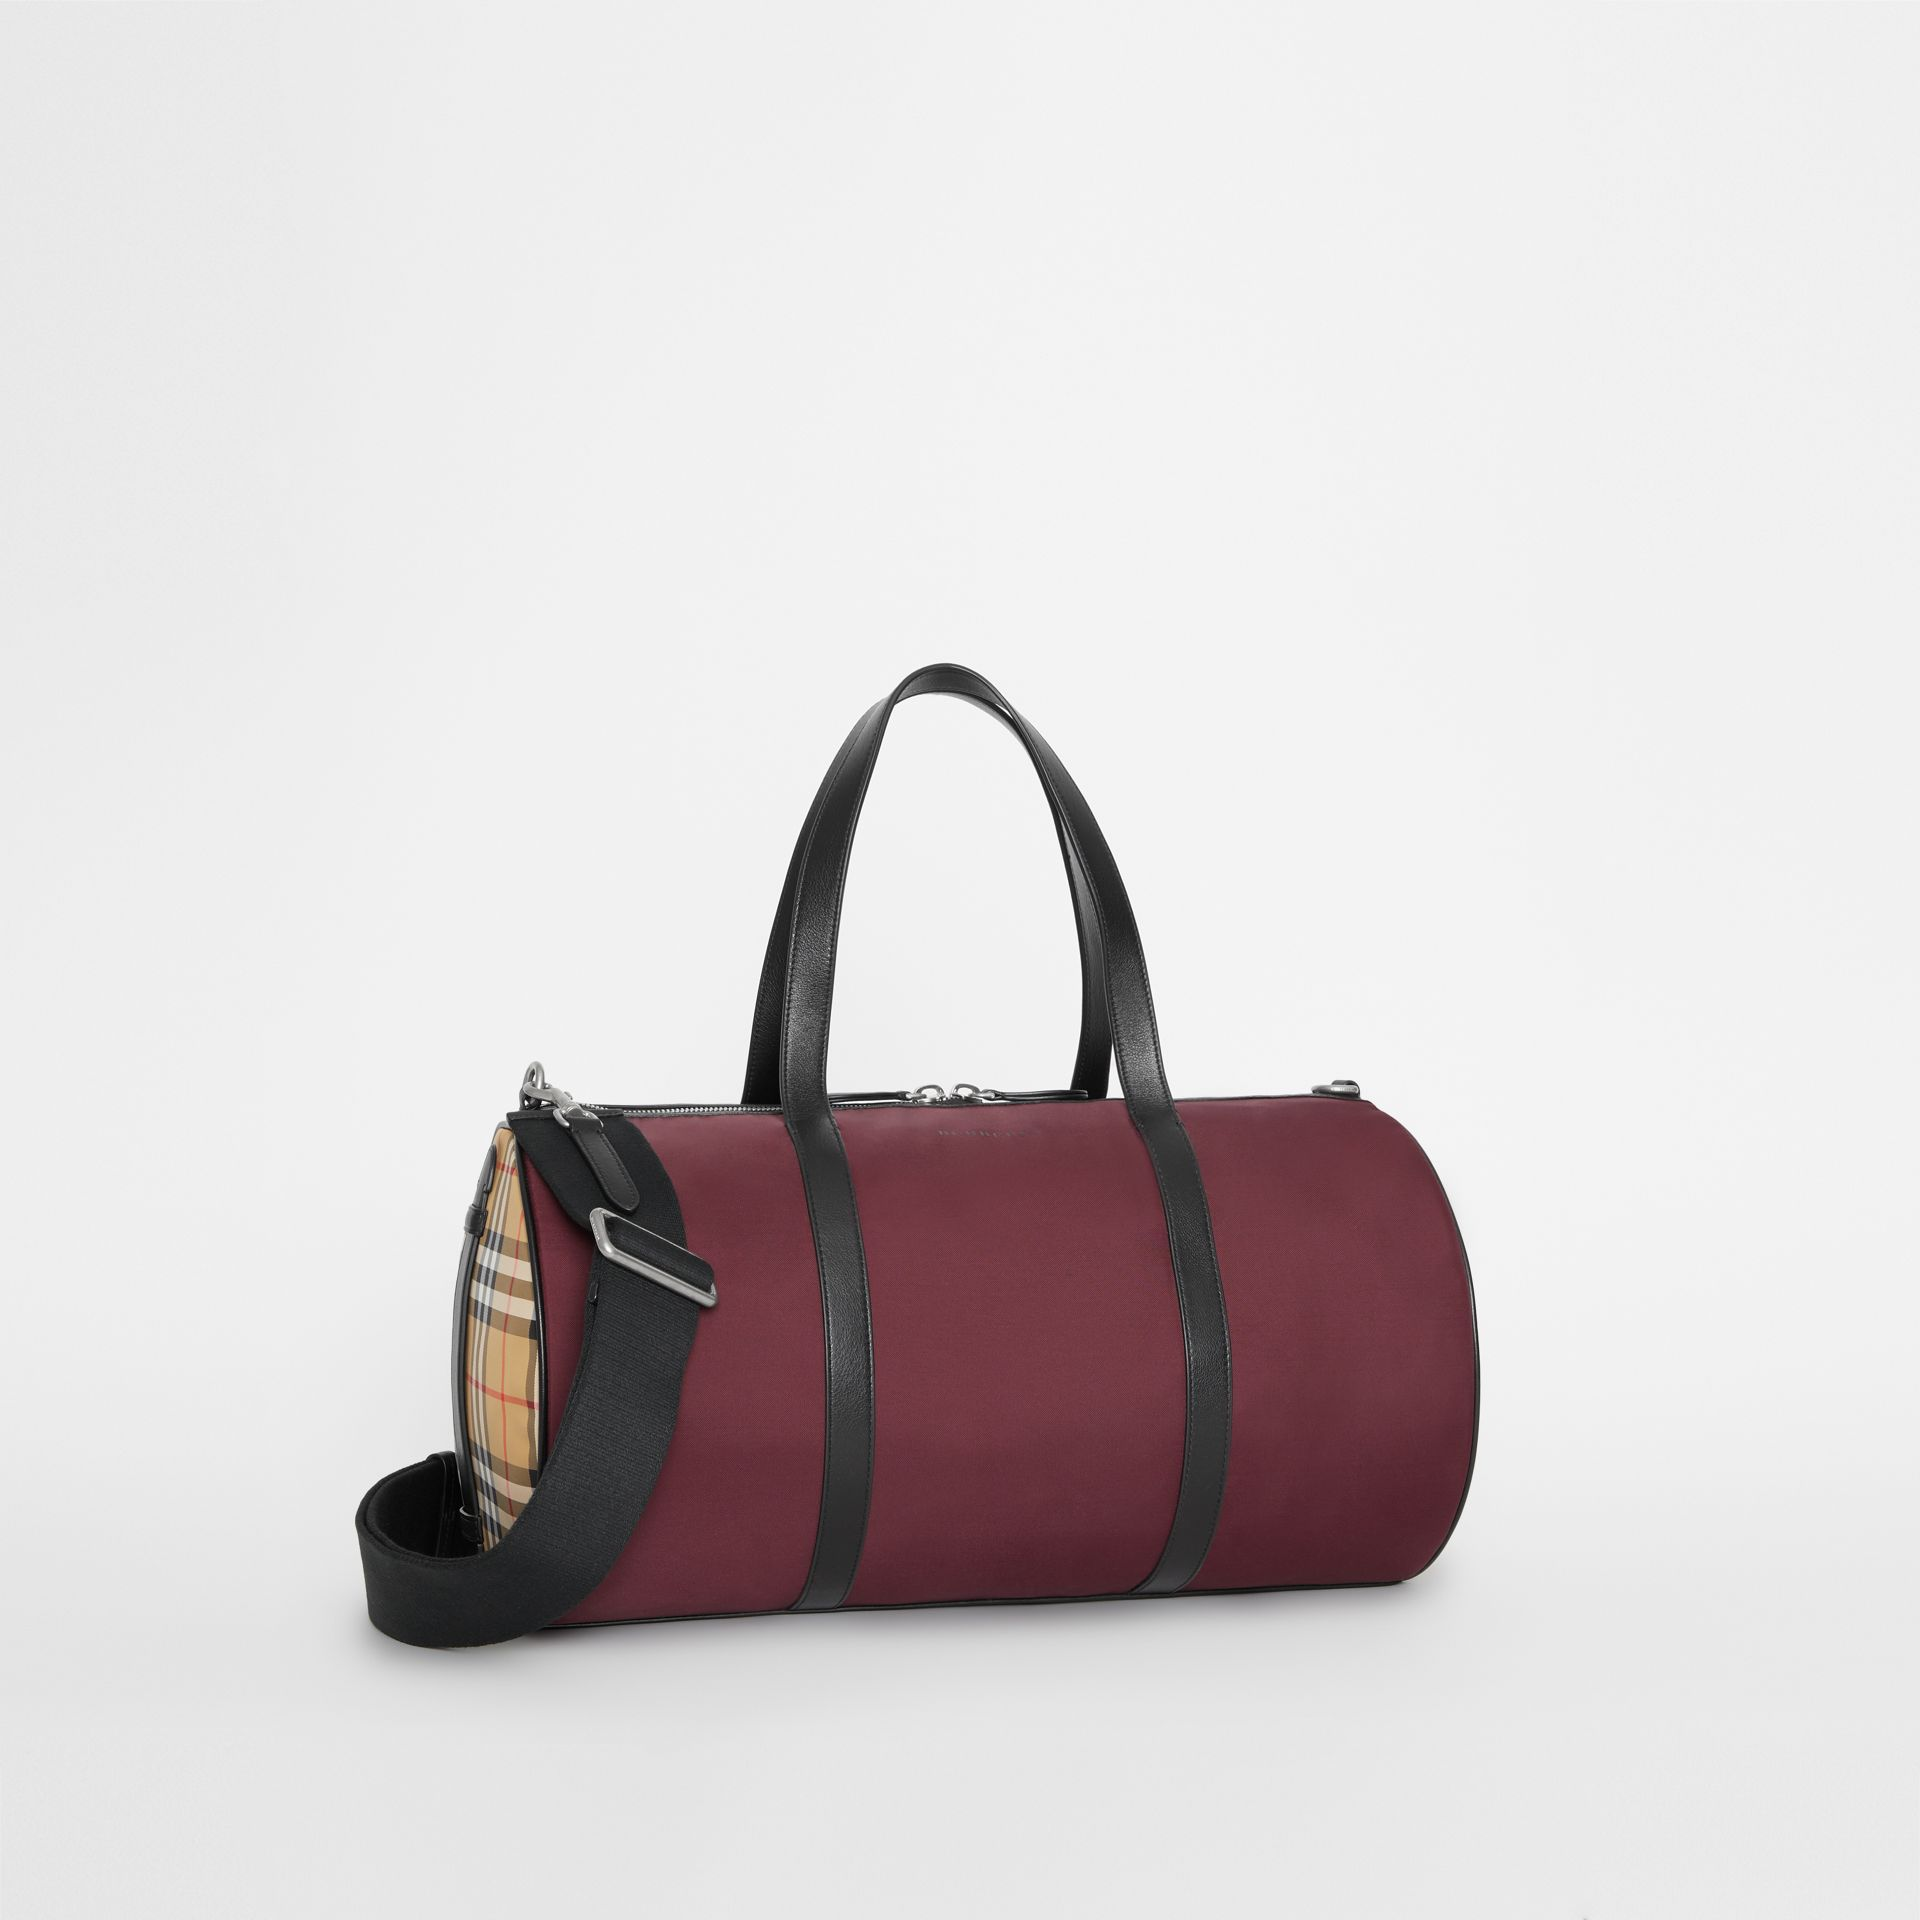 Sac The Barrel moyen en nylon et à motif Vintage check (Oxblood) - Homme | Burberry - photo de la galerie 6